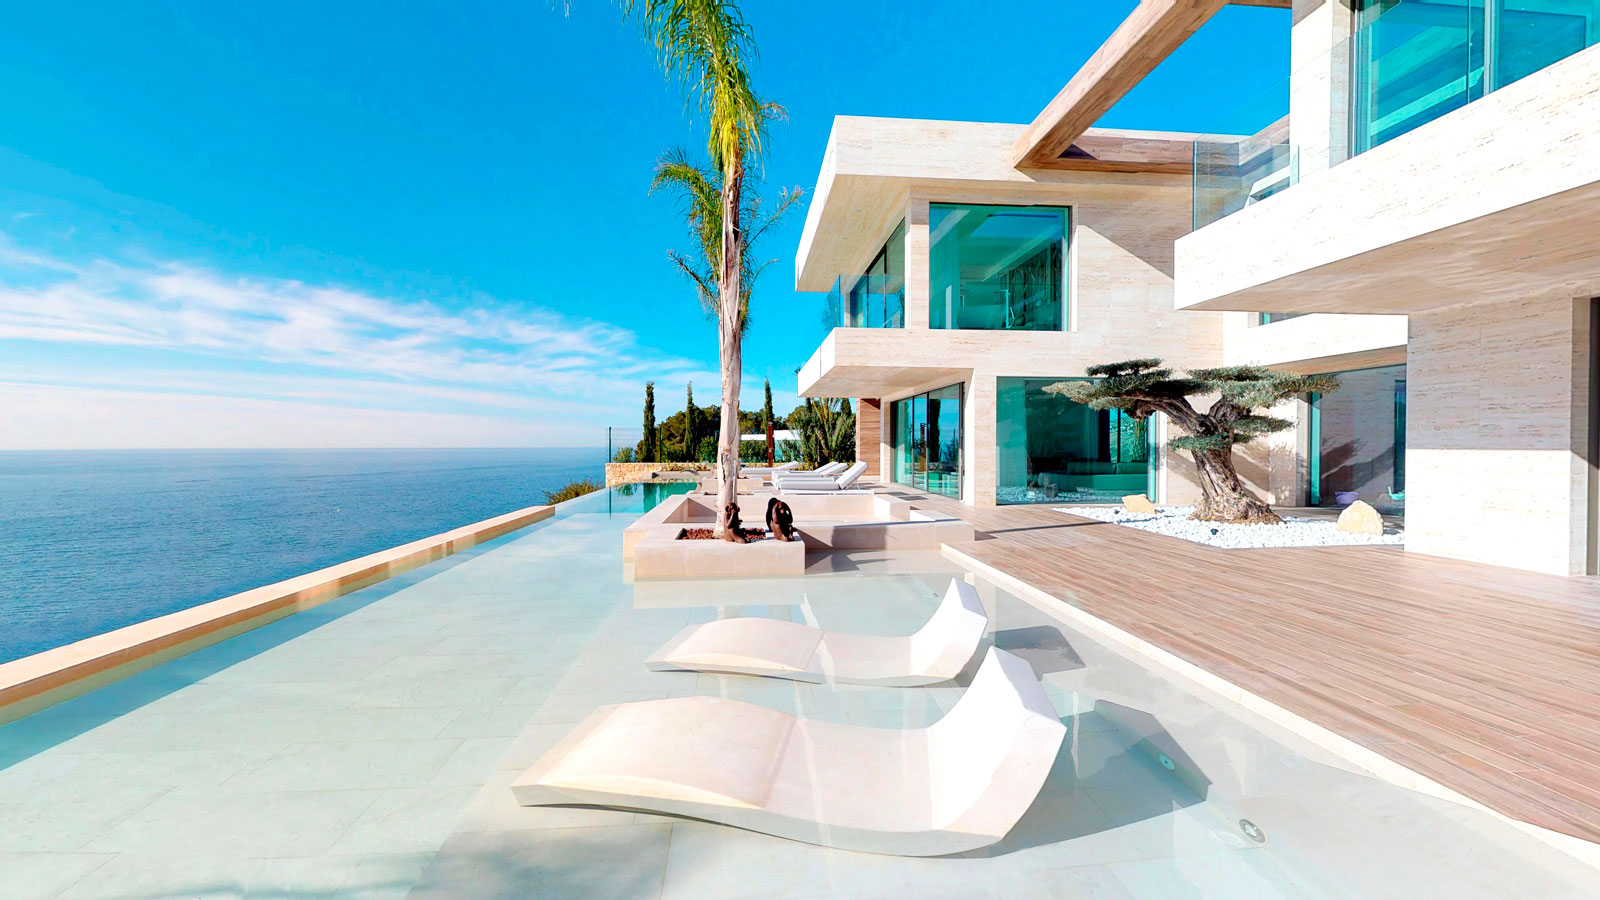 PORCELANOSA Grupo Projects: A dream villa in Jávea